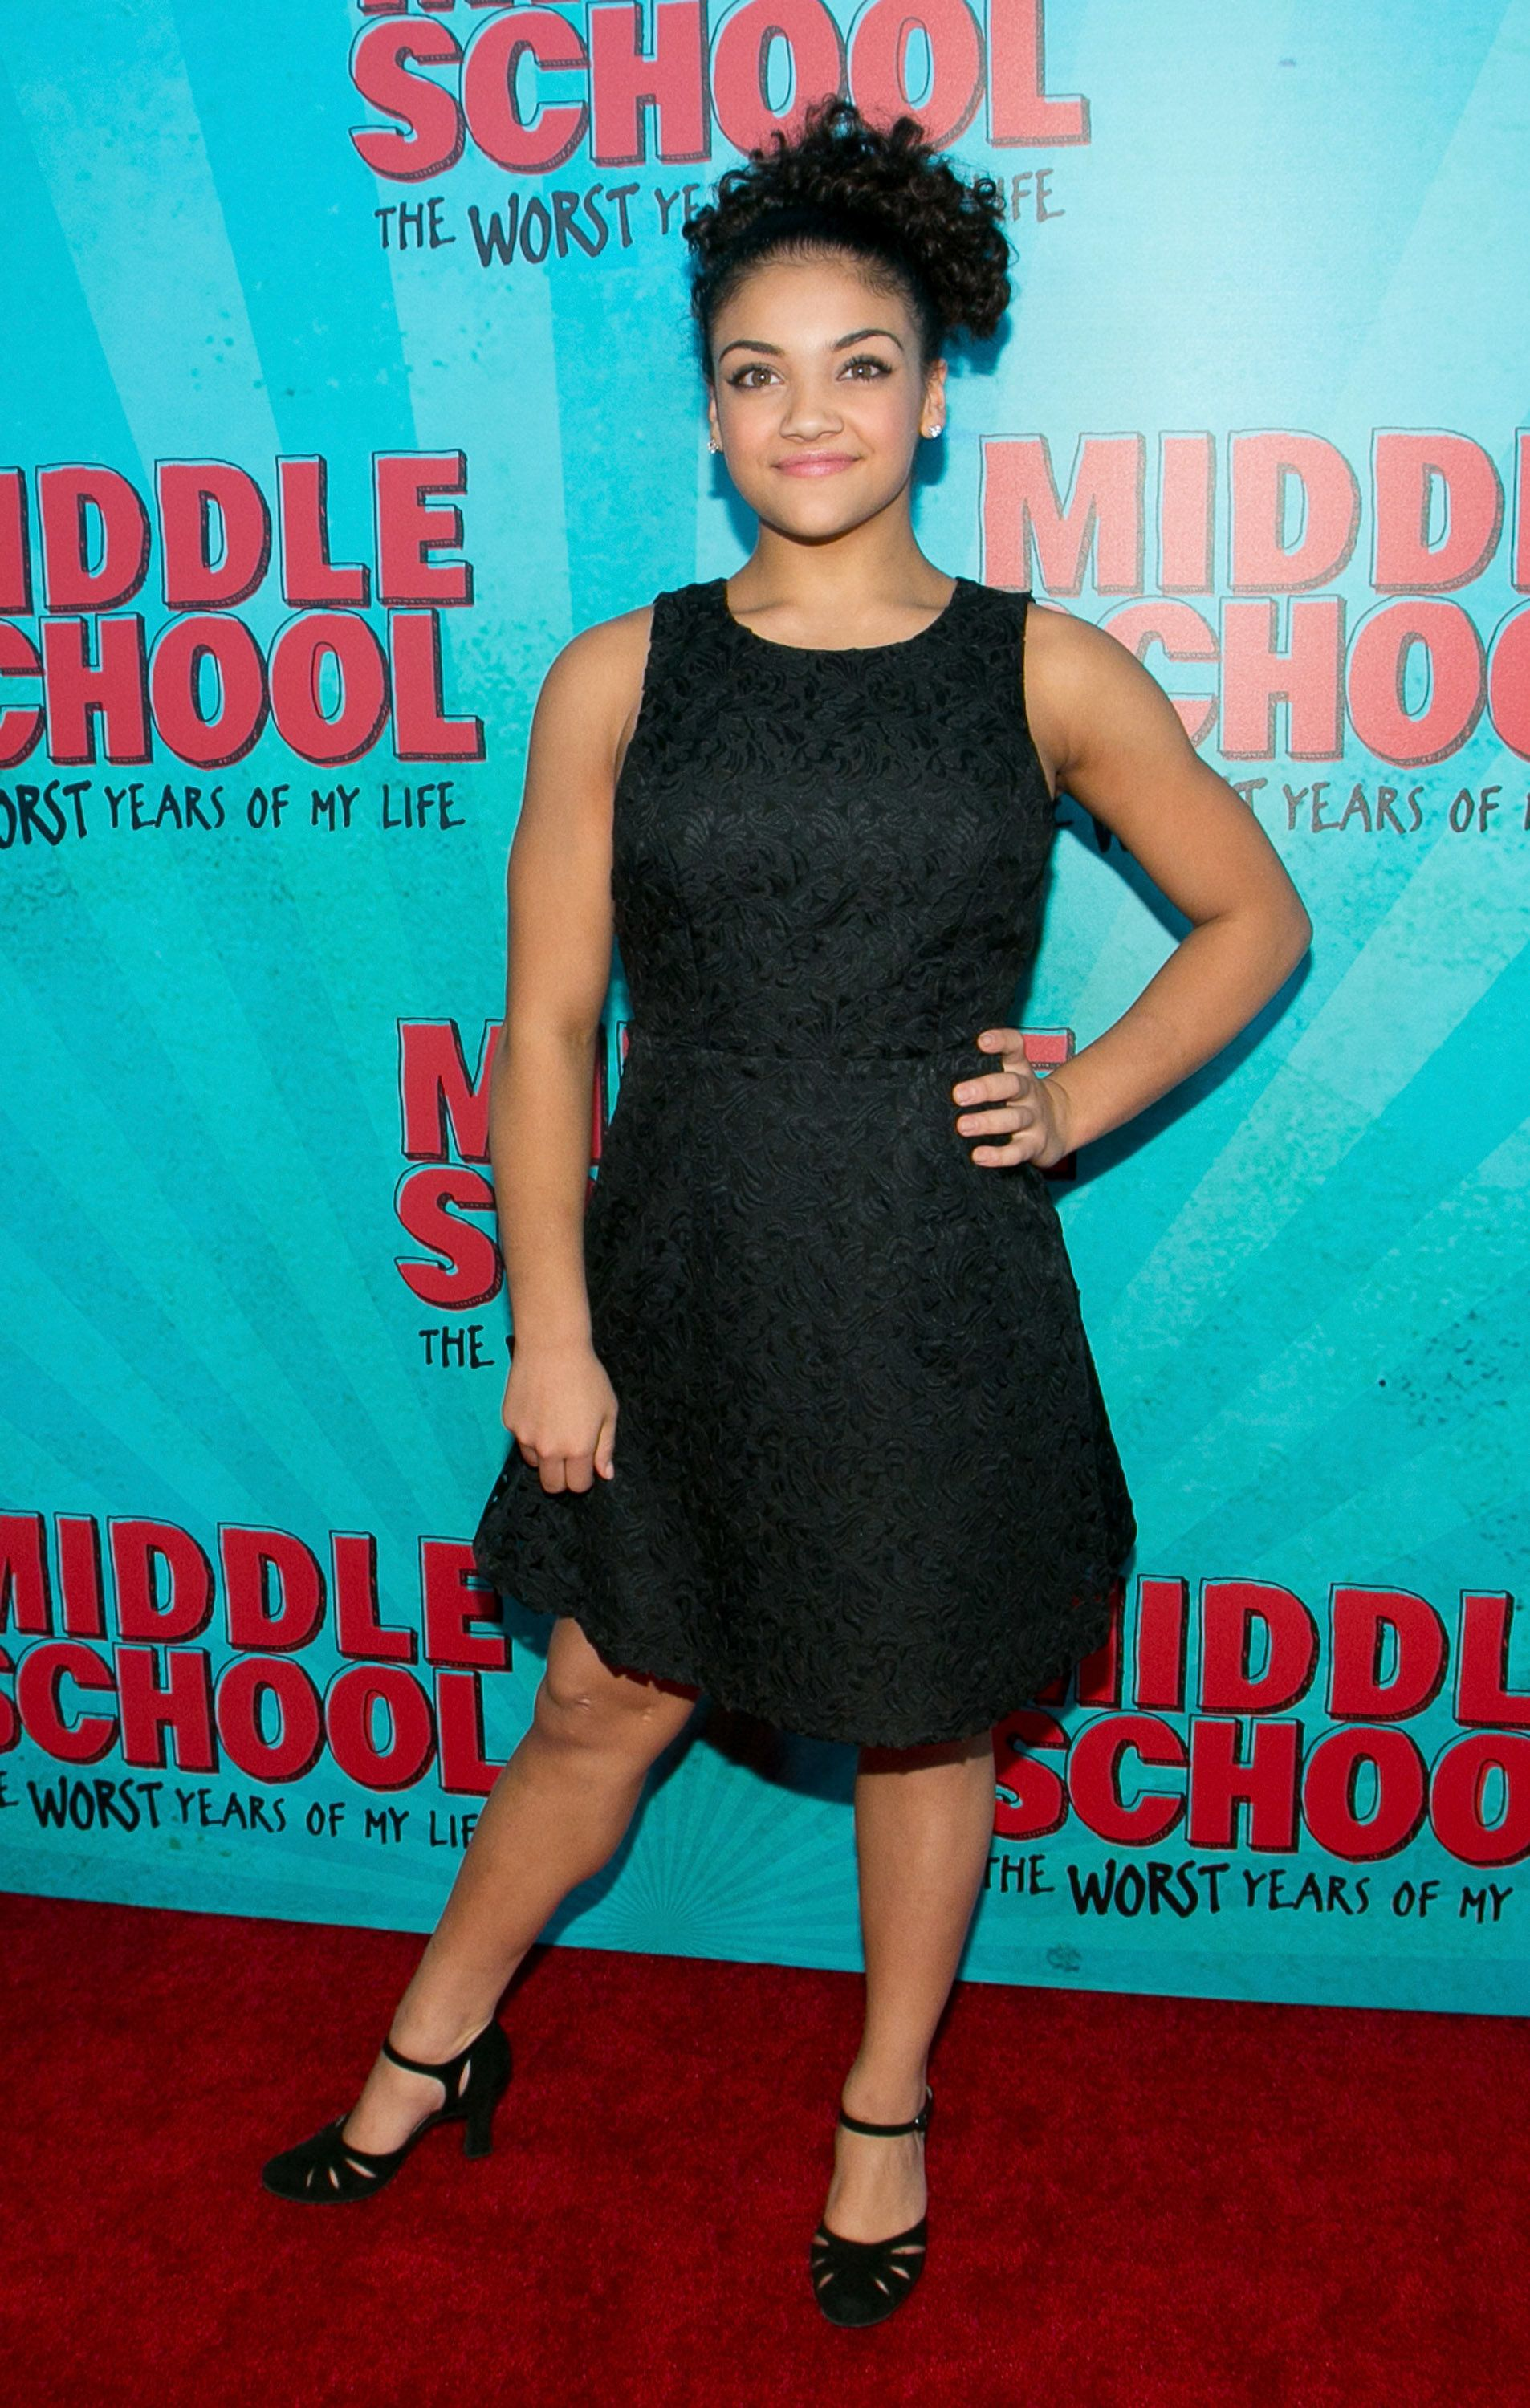 HOLLYWOOD, CA - OCTOBER 05:  Laurie Hernandez arrives for the premiere of CBS Films' 'Middle School: The Worst Years Of My Life' - Arrivals at TCL Chinese 6 Theatres on October 5, 2016 in Hollywood, California.  (Photo by Gabriel Olsen/FilmMagic)